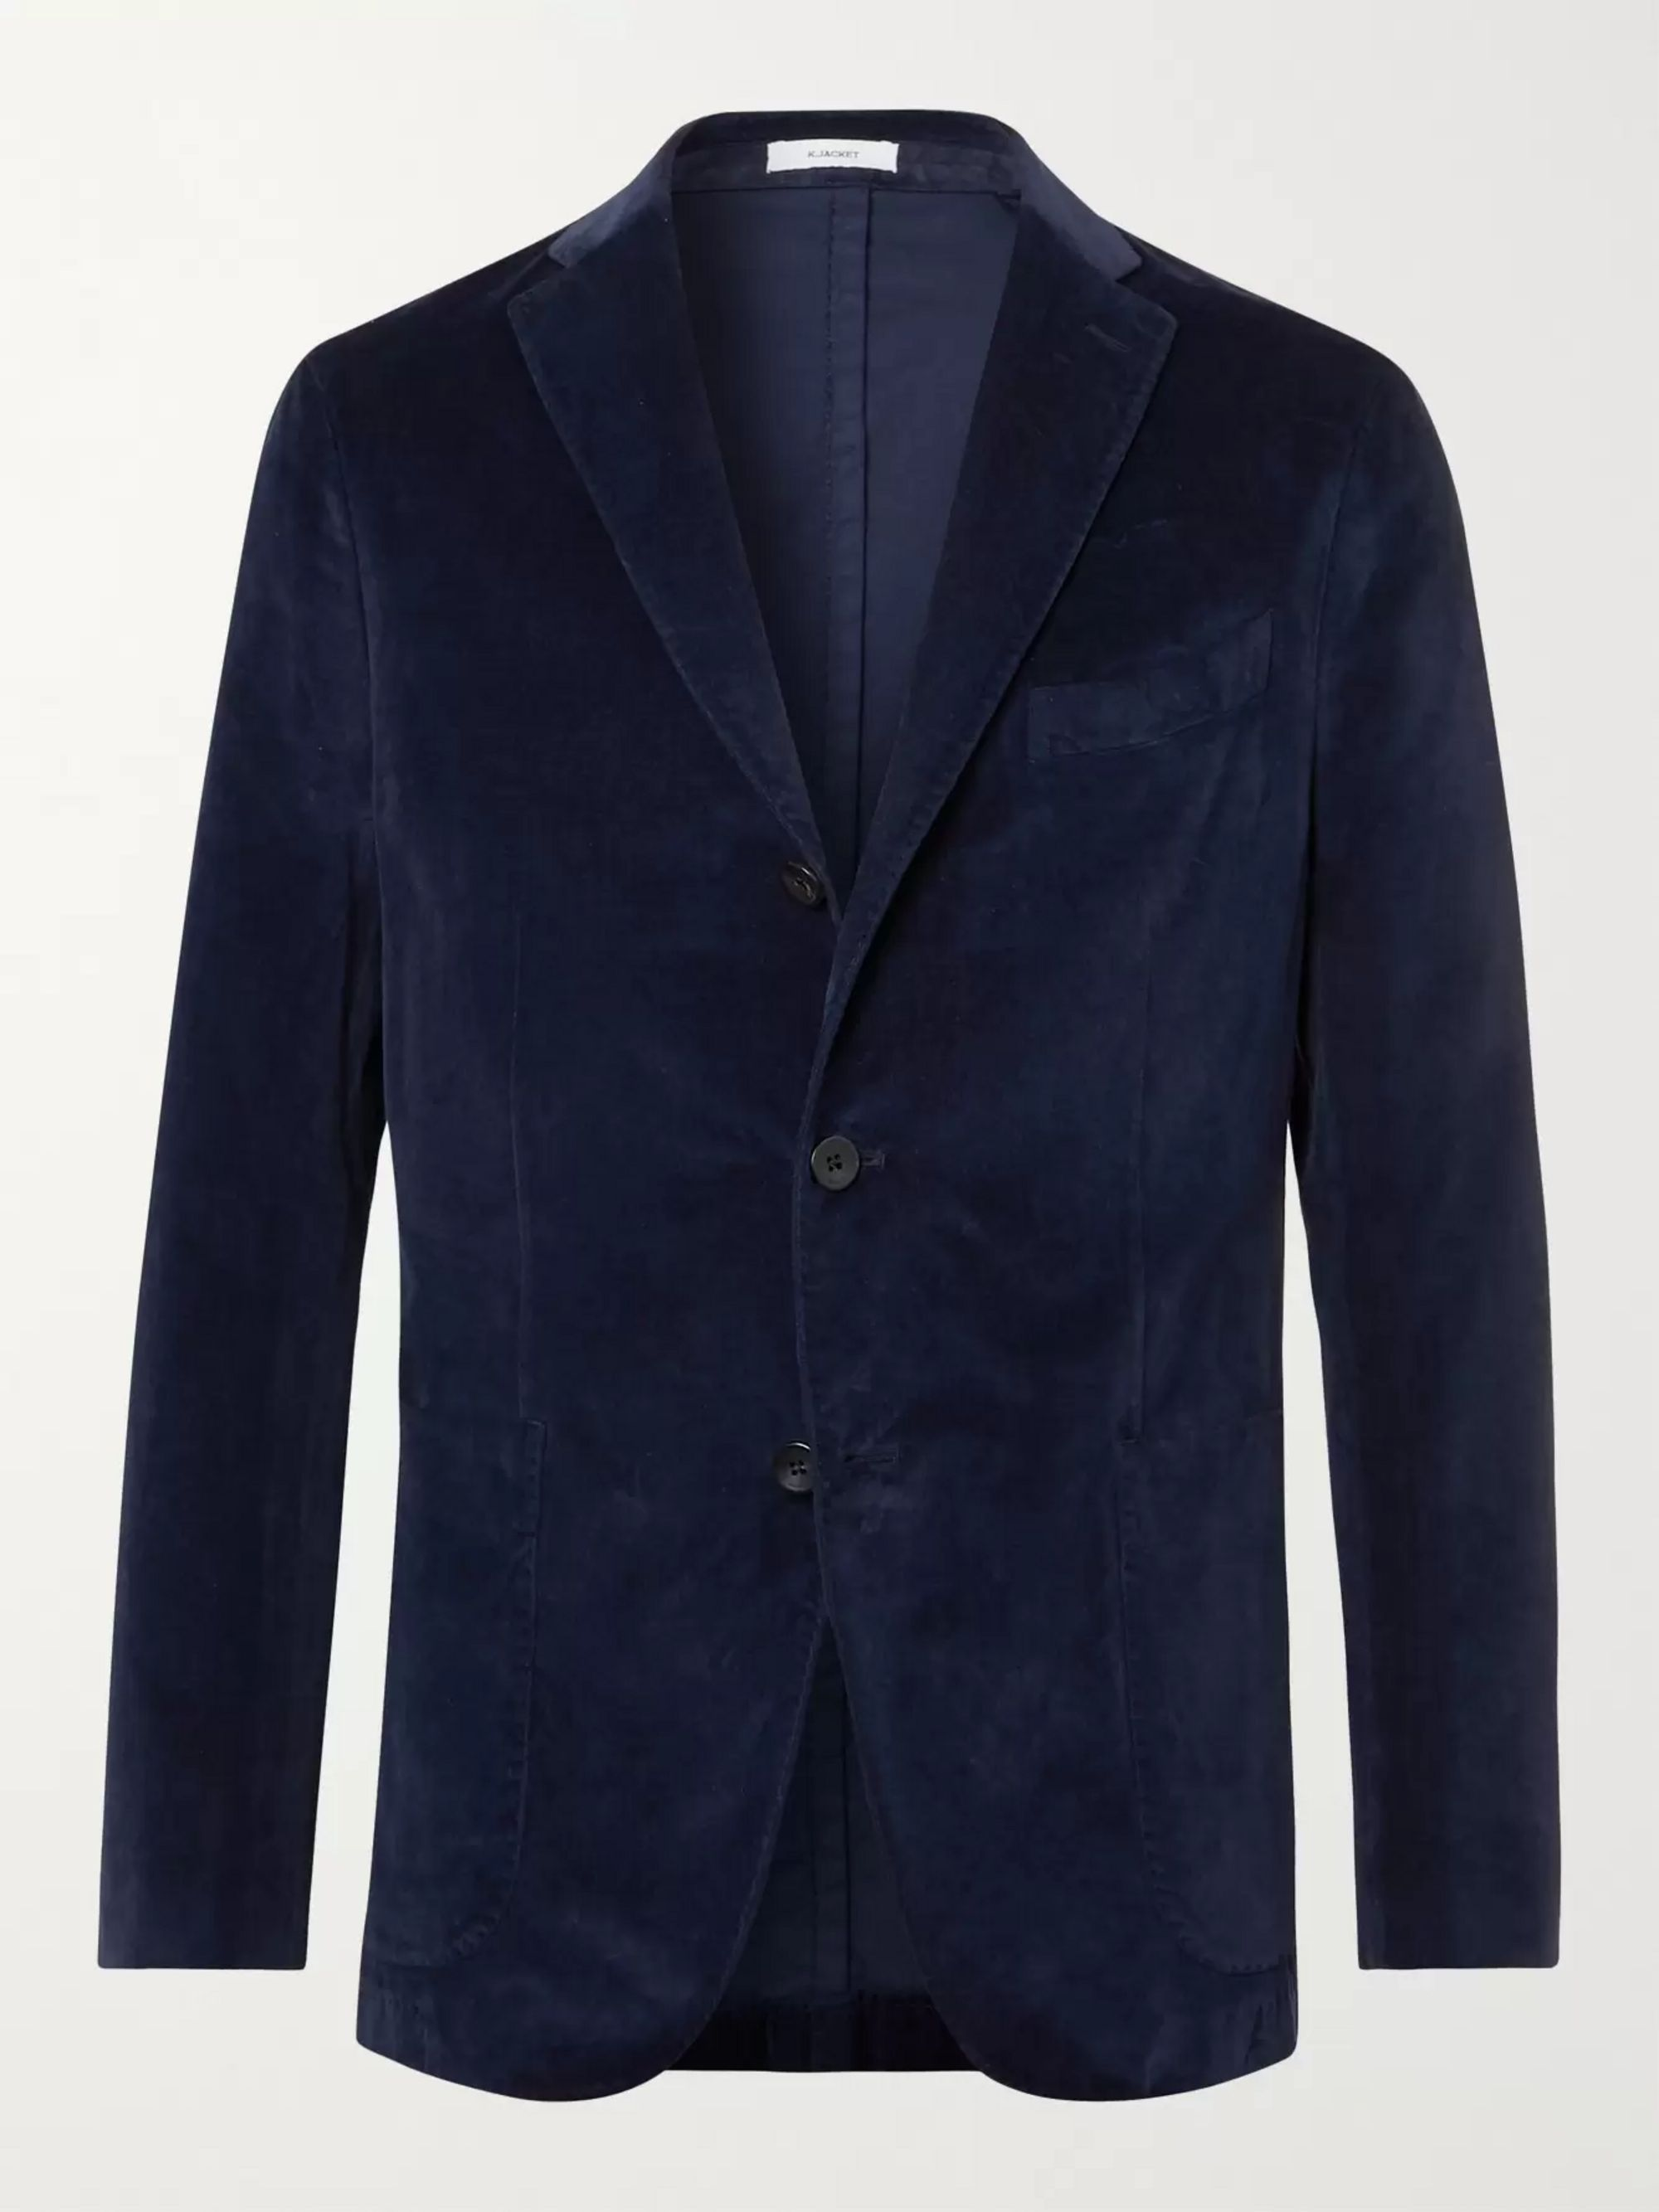 BOGLIOLI Kei Slim-Fit Unstructured Garment-Dyed Cotton-Velvet Blazer